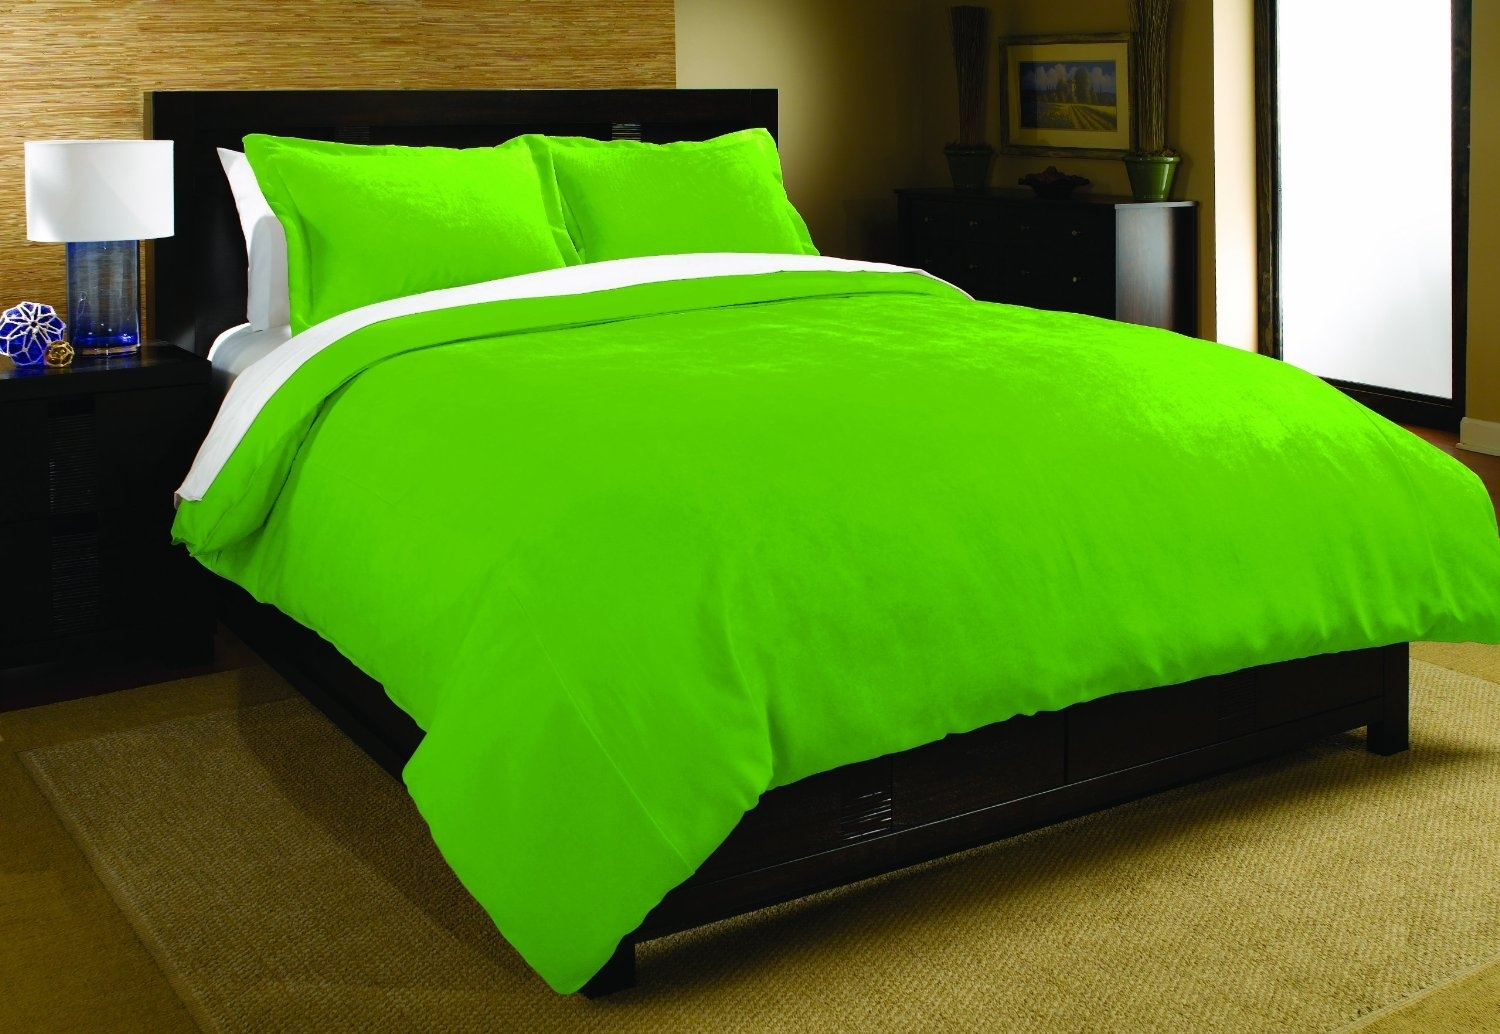 Look Fresher With Lime Green Sheets Madison Art Center